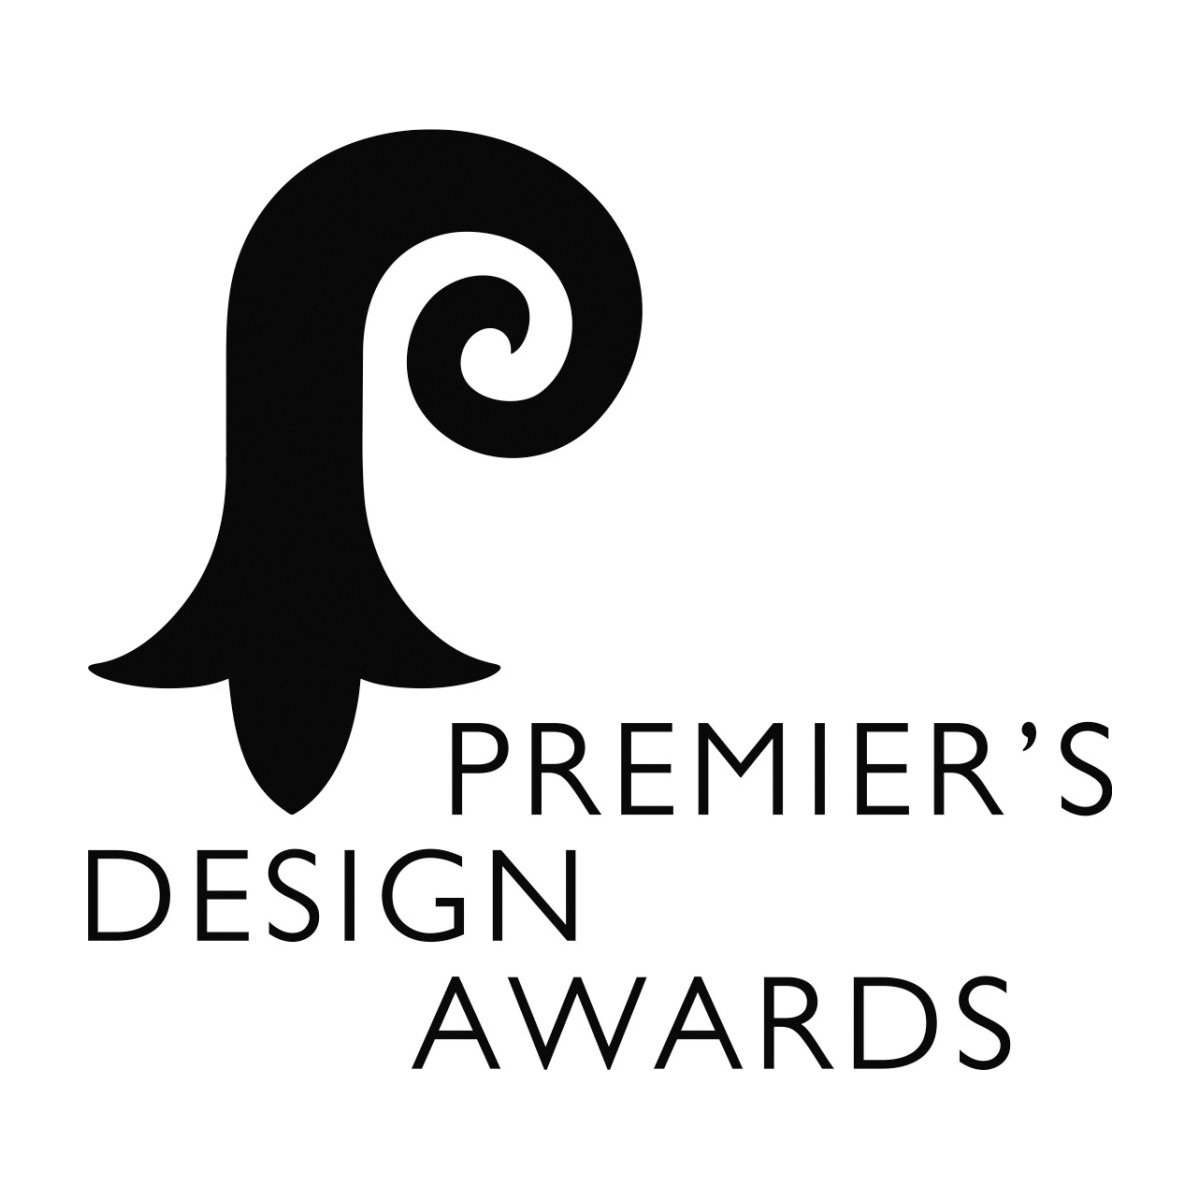 2016 Premier's Design Awards